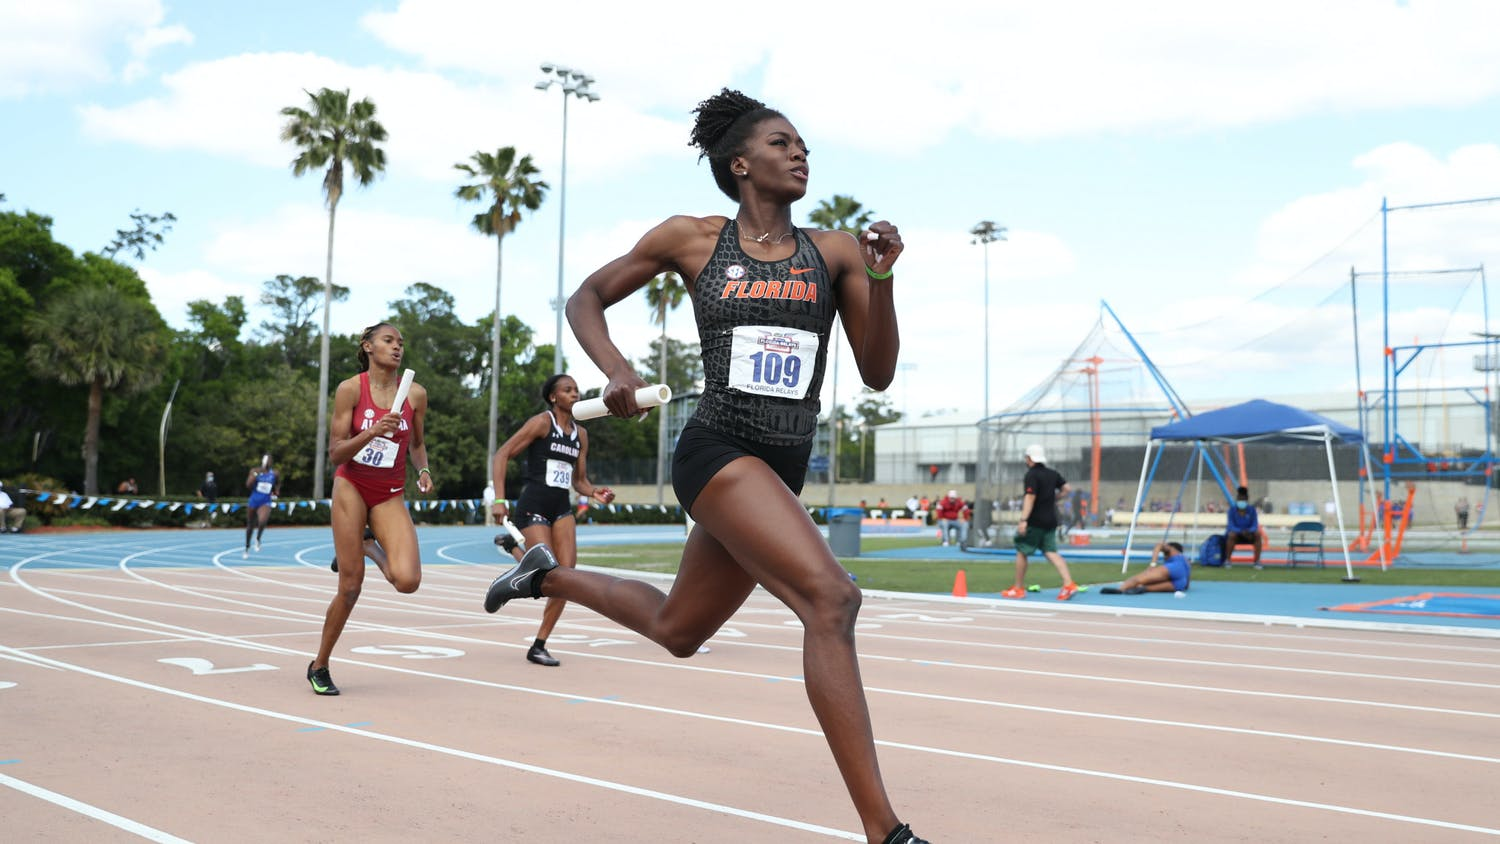 Florida's Taylor Manson competes during the Pepsi Florida Relays on Saturday, April 3, 2021 at Percy Beard Track at James G. Pressly Stadium in Gainesville, Fla. / UAA Communications photo by Hannah White